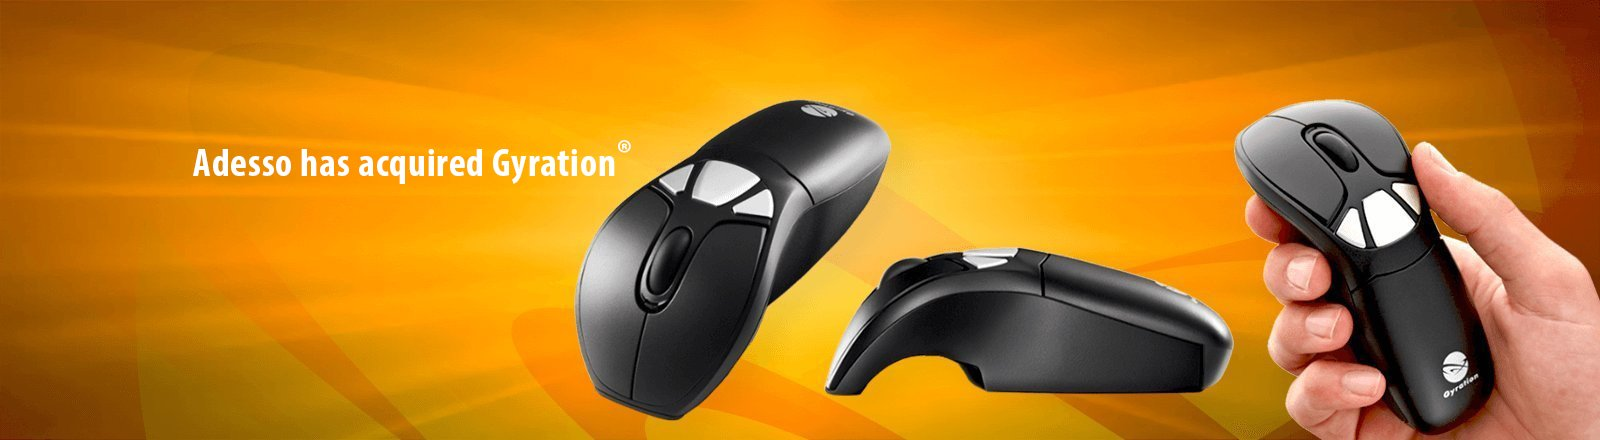 Air Mouse GO Plus Classic